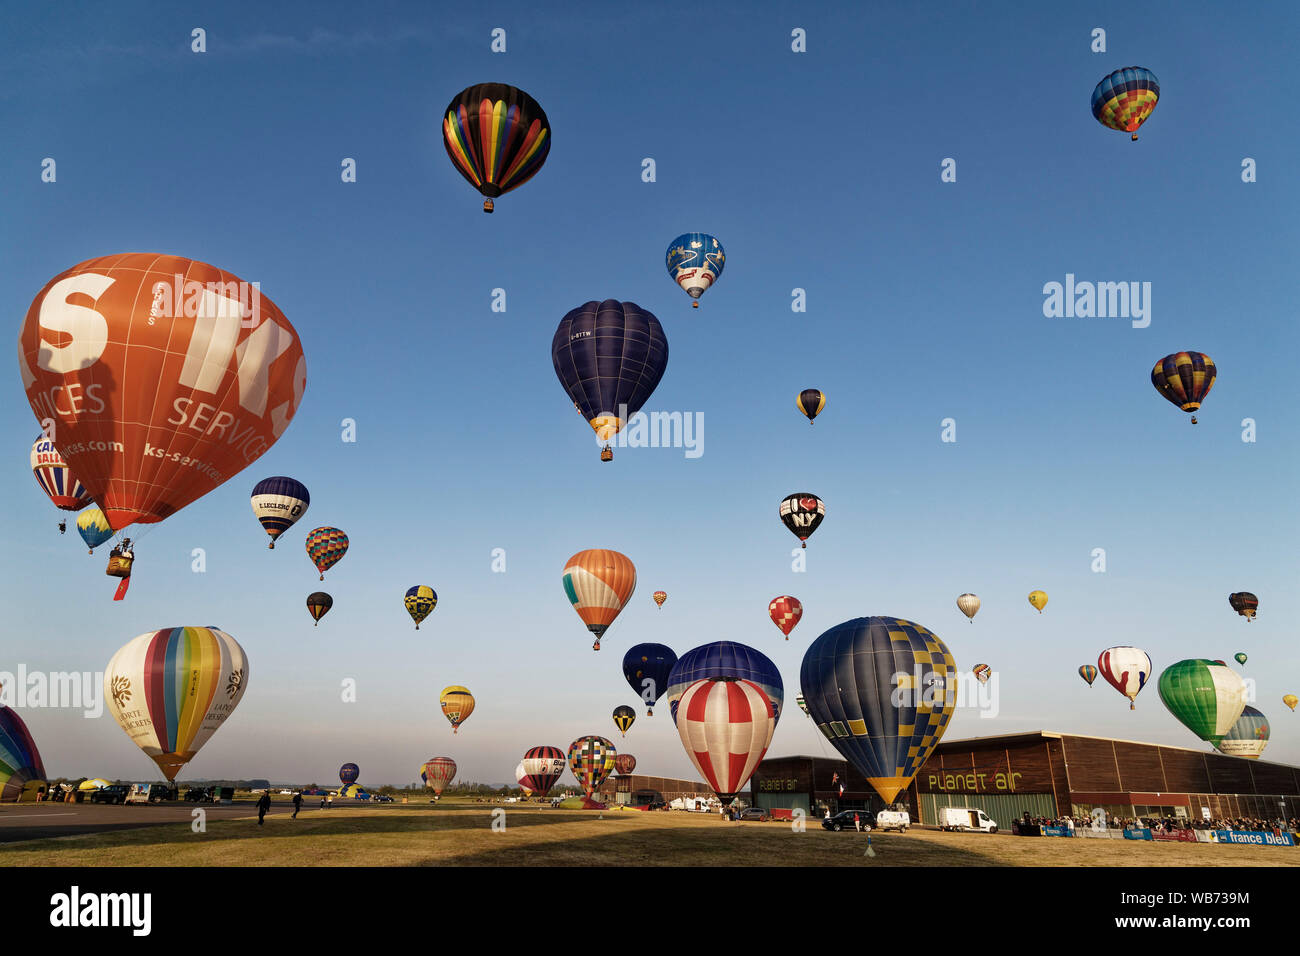 Chambley, France. 4th August, 2019. Hundreds of hot air balloons took off from the Chambley-Bussieres Airbase for the Grand Est Mondial Air Ballons. Stock Photo